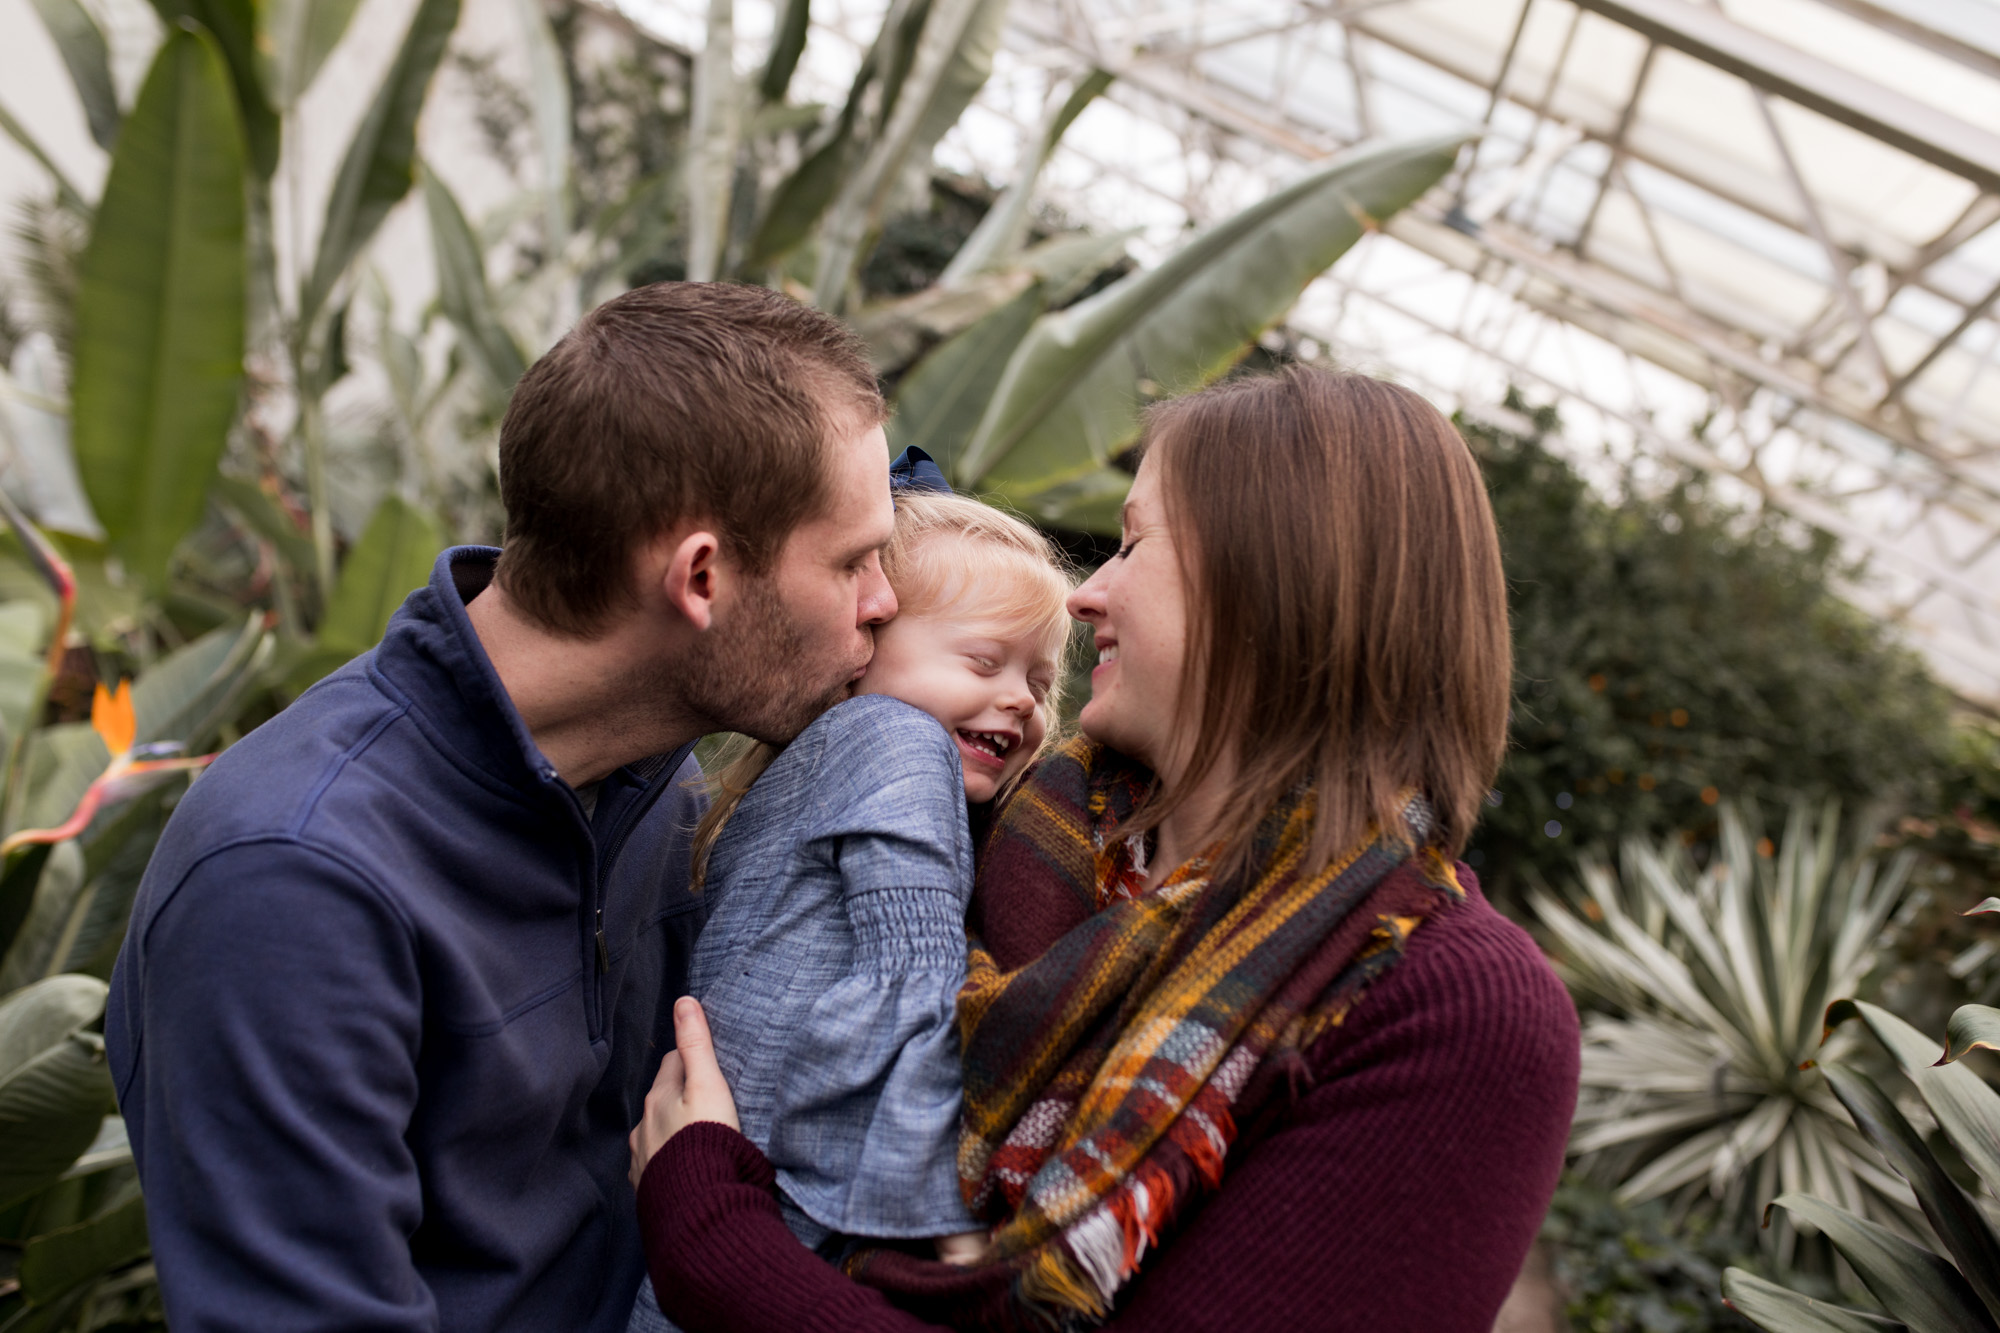 mom and dad kiss daughter's cheeks during Fort Wayne family photography session at Foellinger-Freimann Botanical Conservatory